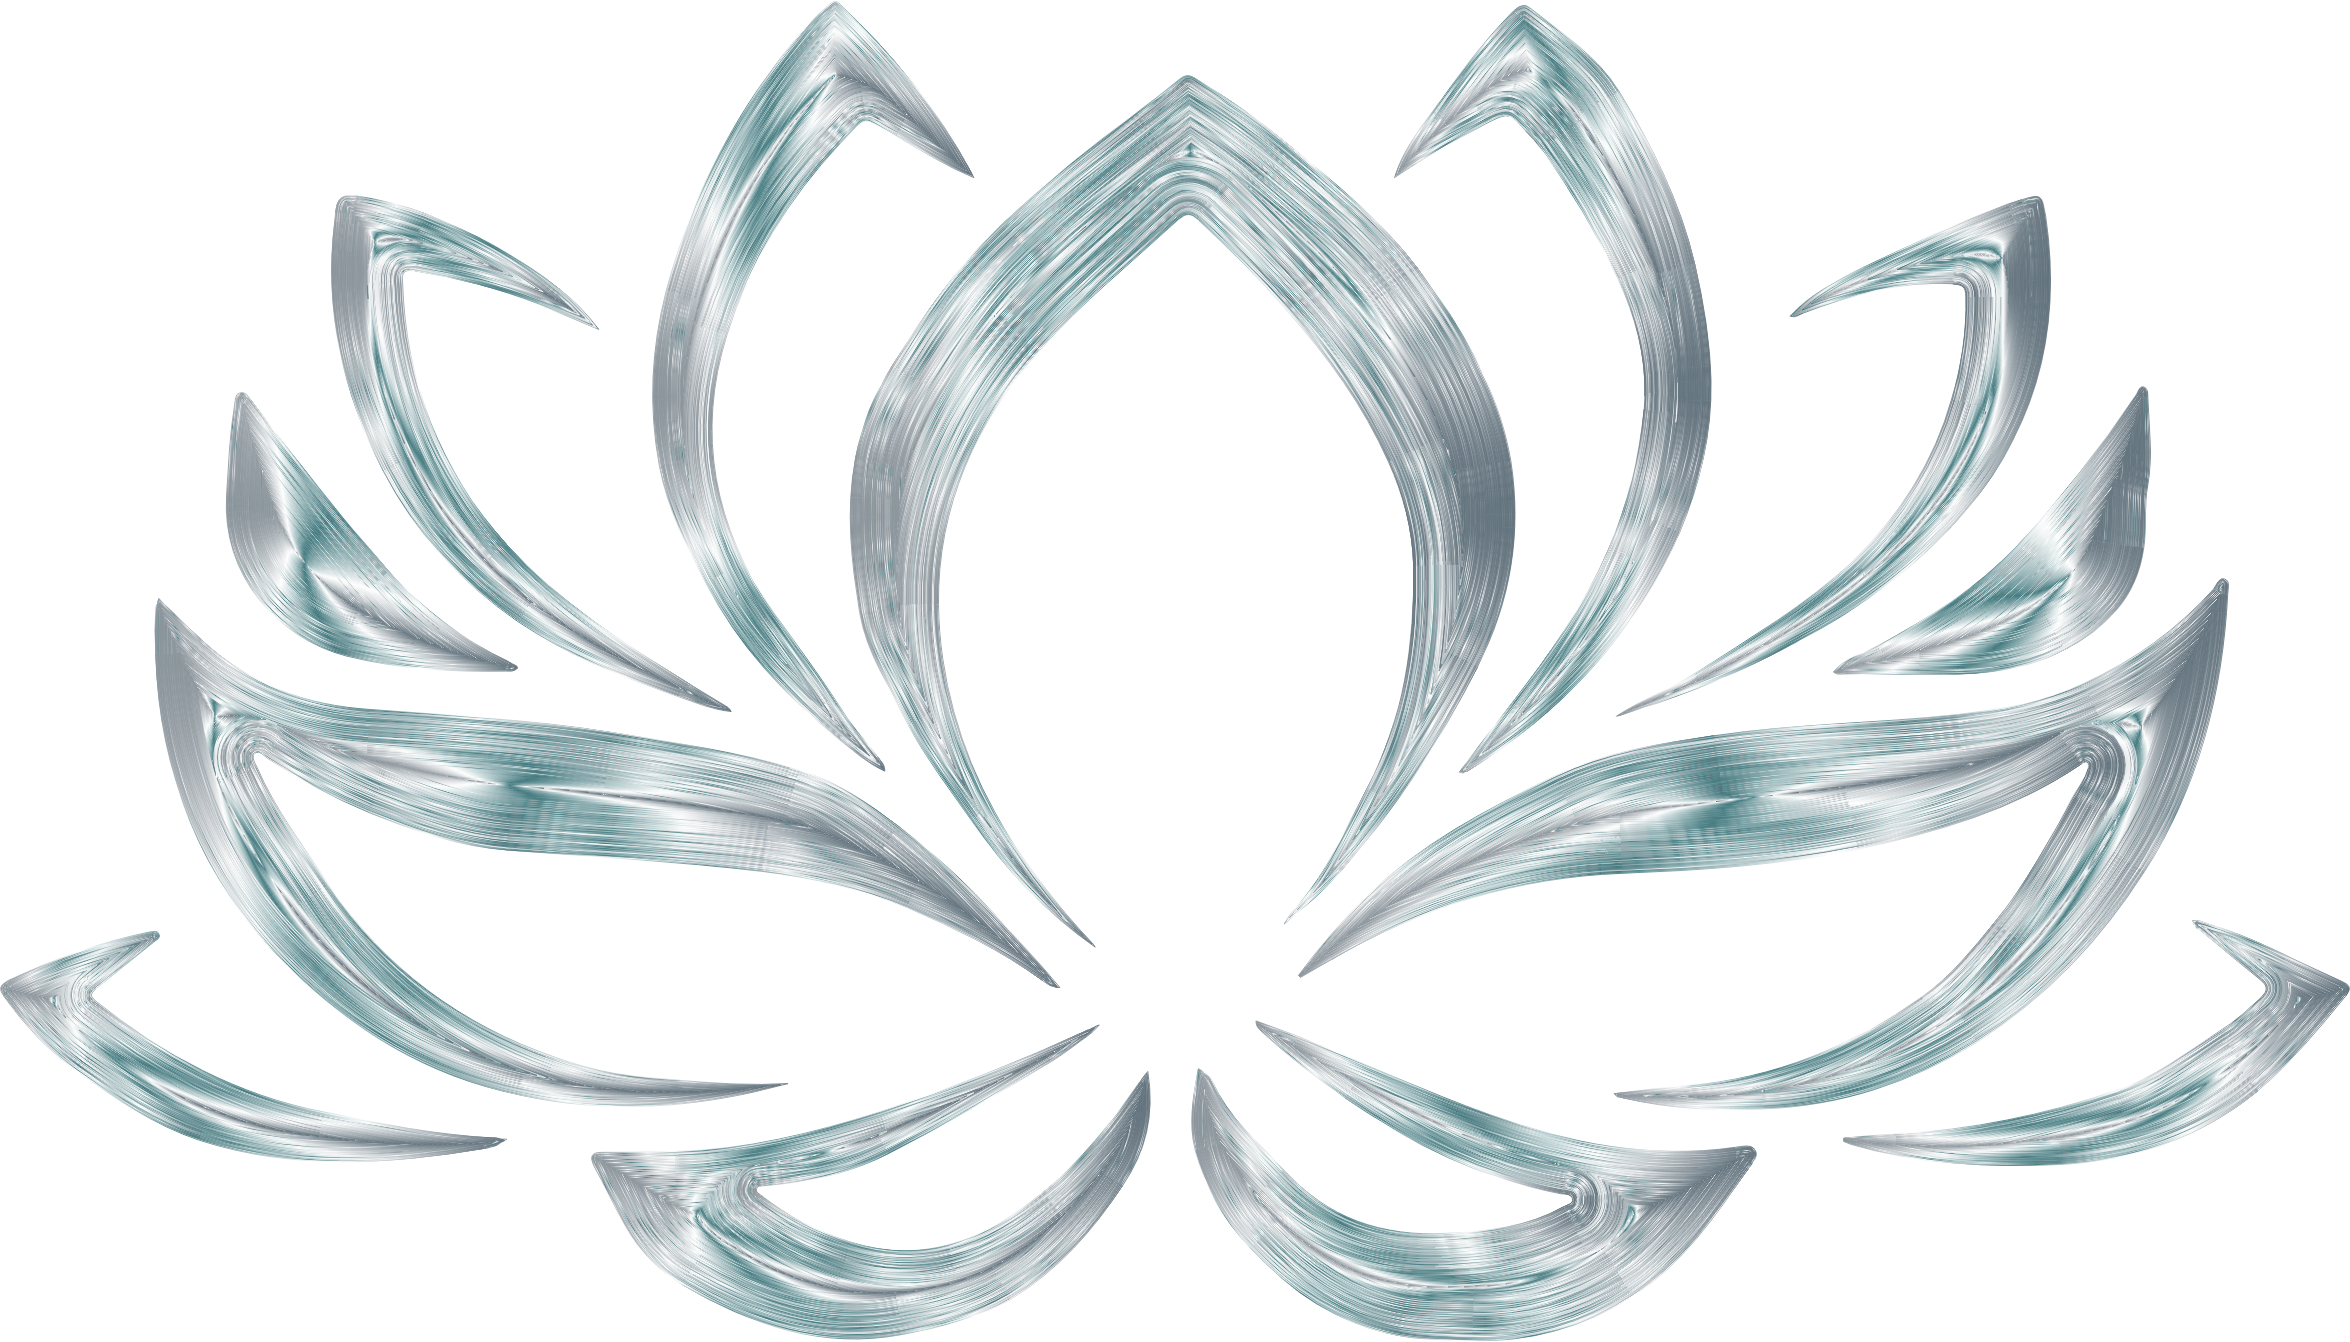 Clipart silverized lotus flower no background big image png mightylinksfo